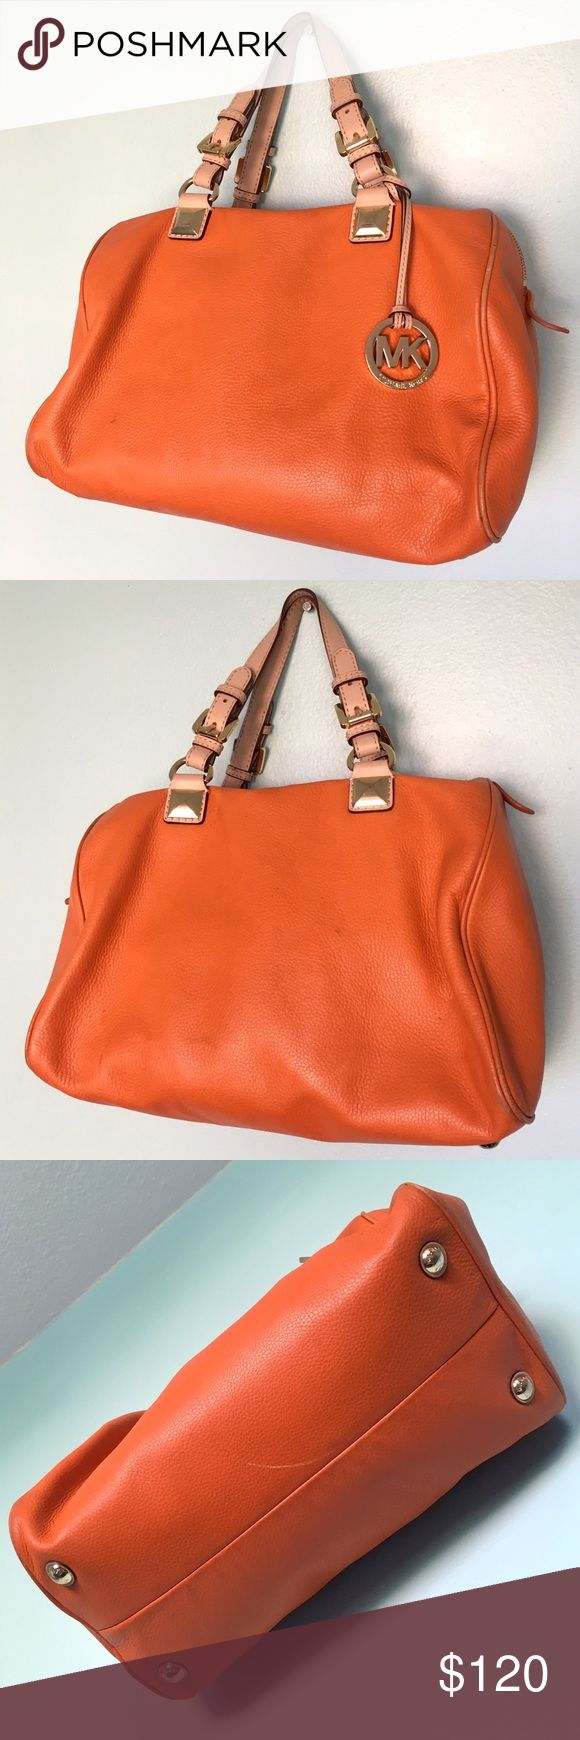 Michael Kors Large Leather Orange Gold Tote Bag Michael Kors Large Leather Orange Tan Gold Tote Handbag Purse. In great condition, only a few minor scuffs. Gorgeous! 💕 MICHAEL Michael Kors Bags Totes